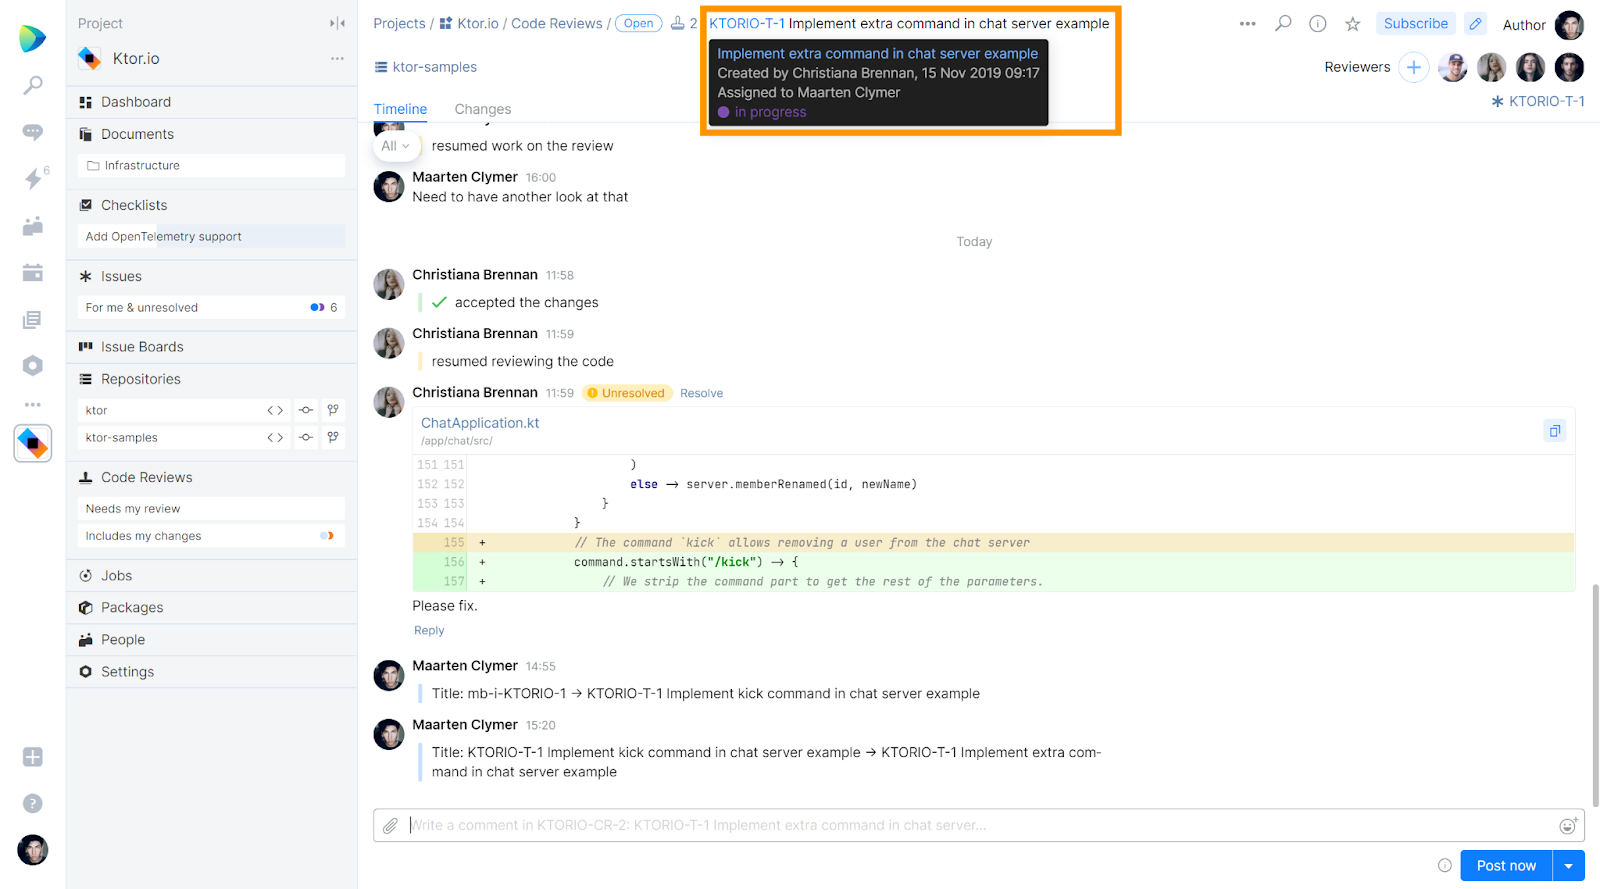 Keep track of code changes in Space issues by hovering over the issue ID